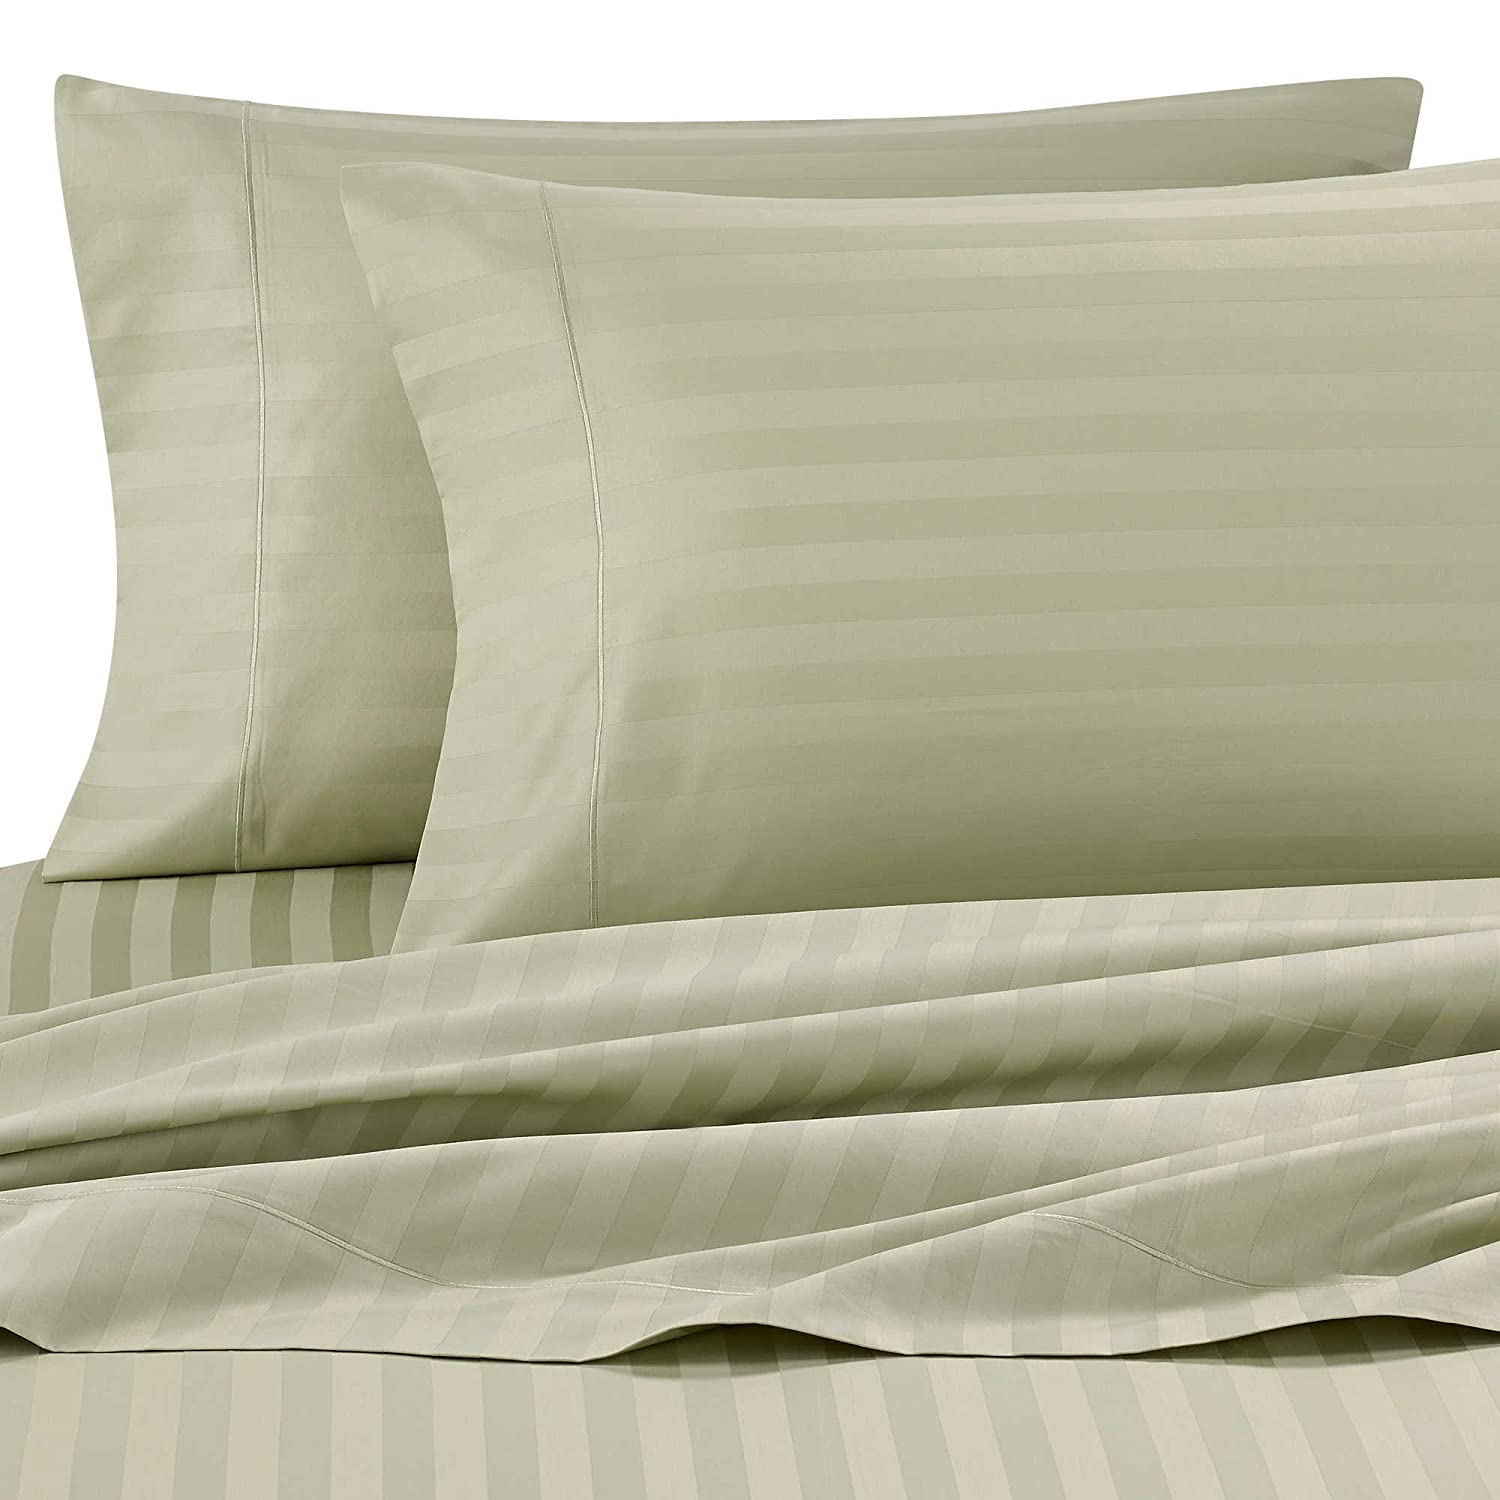 Wamsutta Damask Stripe 500-Thread-Count PimaCott Queen Sheet Set in Sage Green